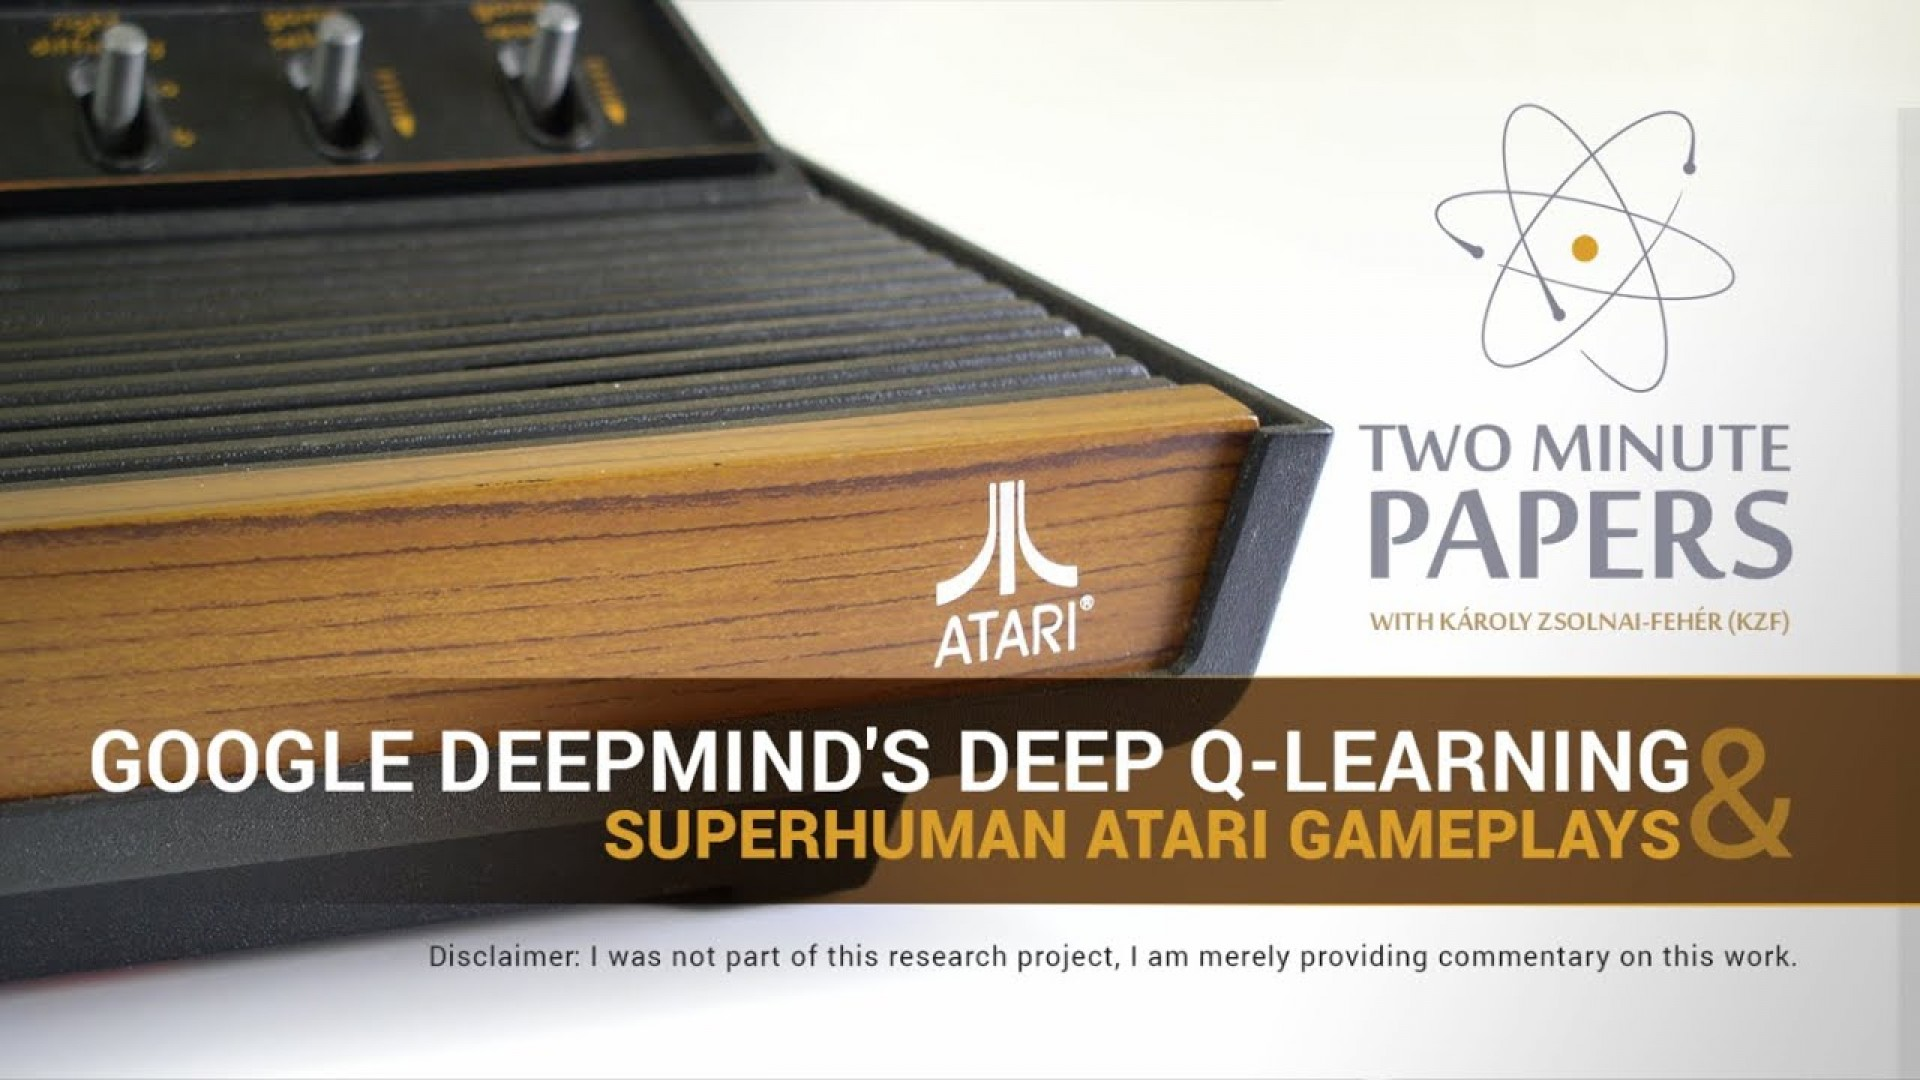 018 Research Paper Google Deepmind Papers Outstanding 1920